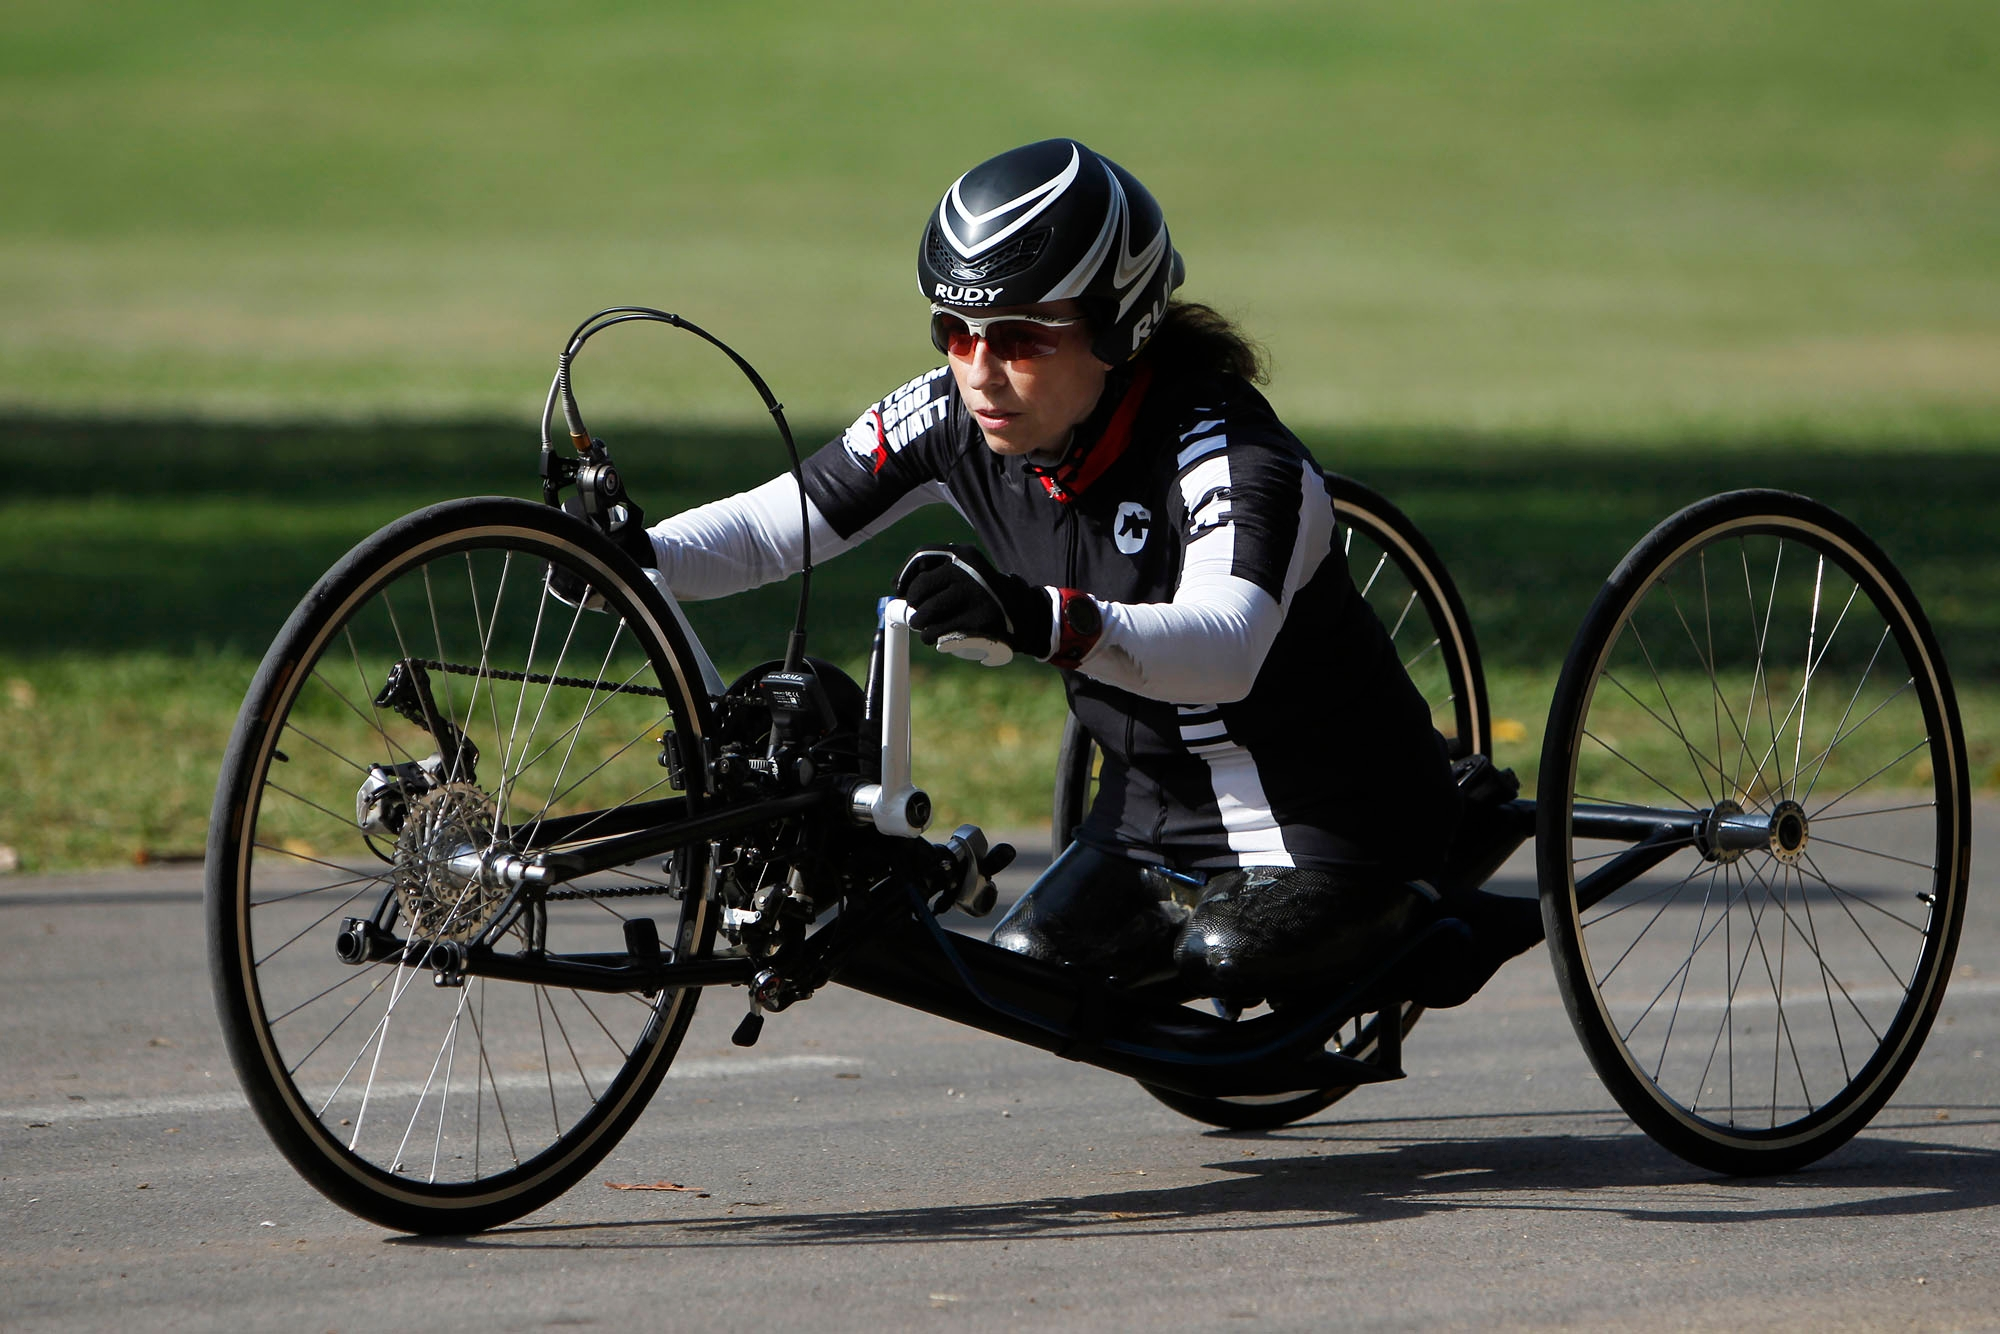 Israeli Paralympic handcyclist Pascale Bercovitch